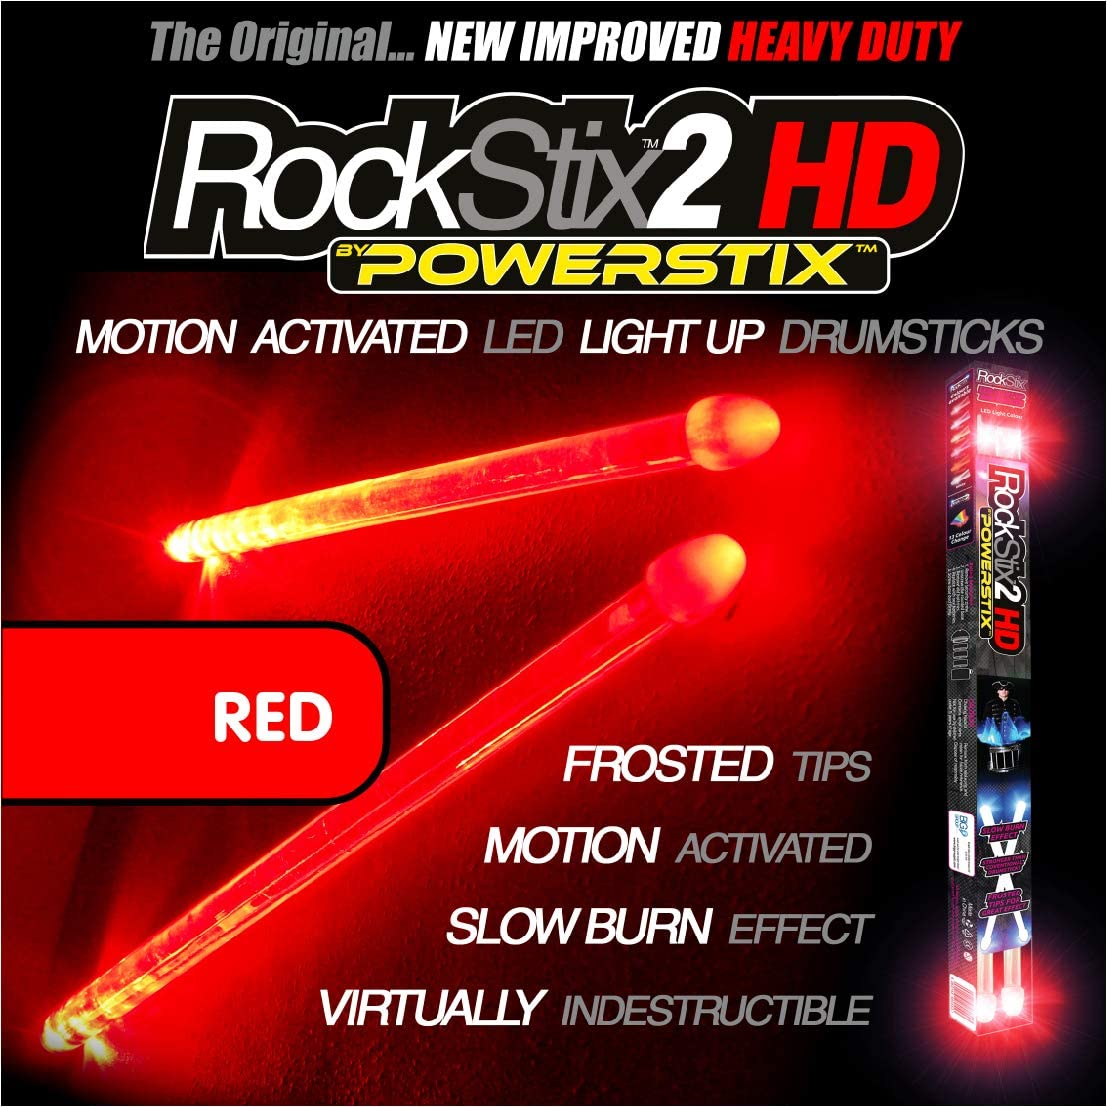 ROCKSTIX 2 HD RED, BRIGHT LED LIGHT UP DRUMSTICKS, with fade effect, Set your gig on fire! (RED ROCKSTIX)